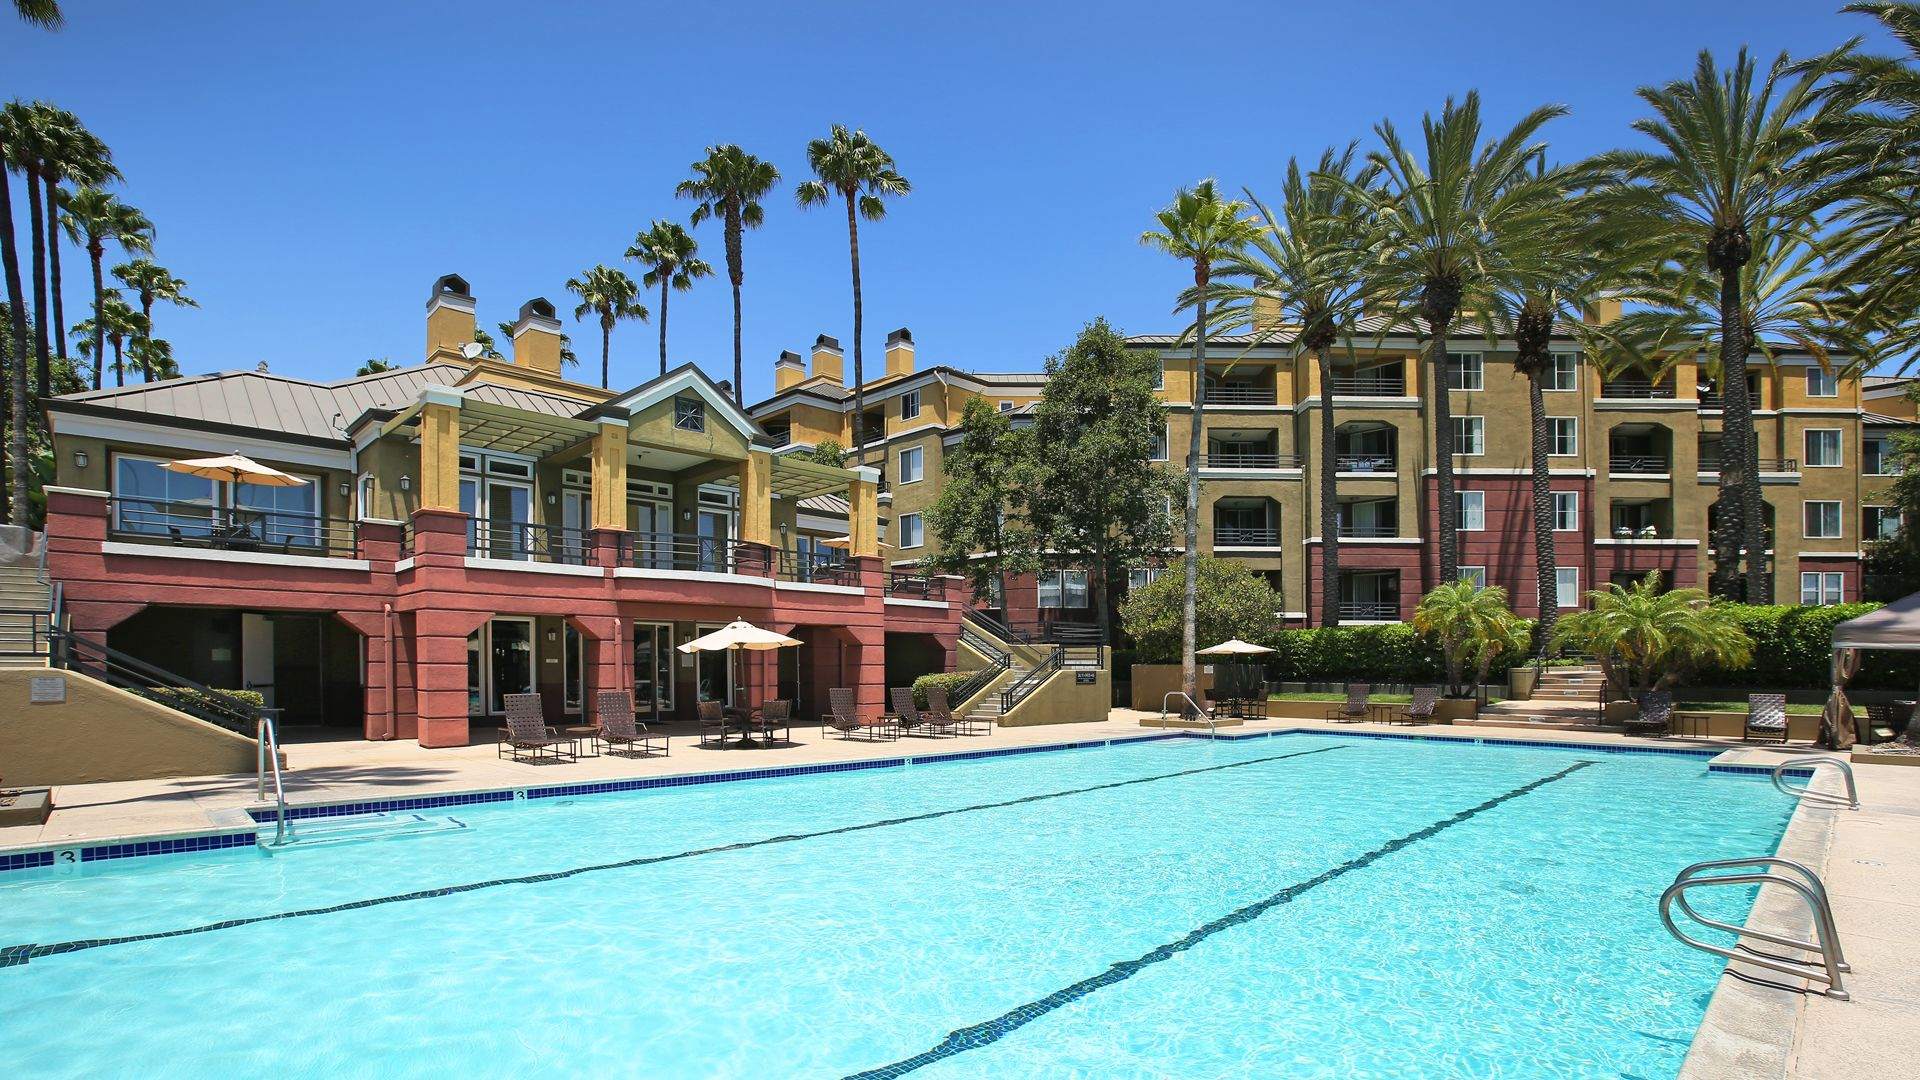 avanti apartments - anaheim - 650 w. broadway | equityapartments